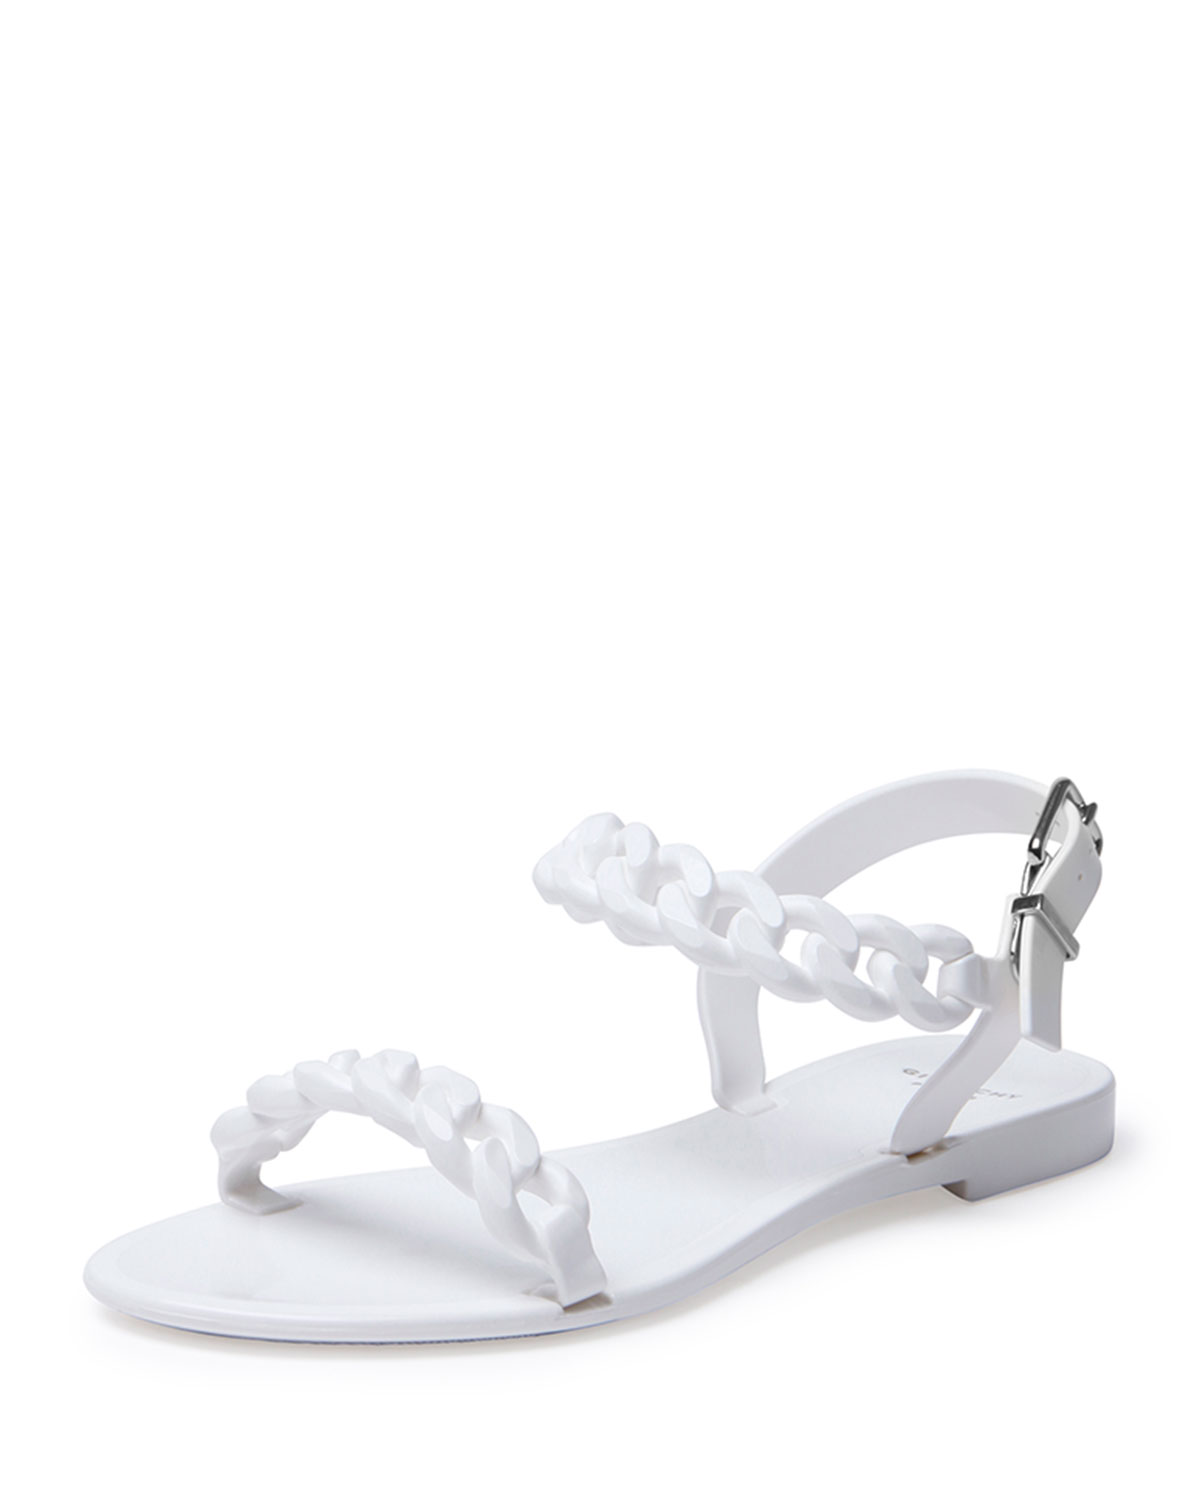 a06df4288a79 Givenchy Chain Jelly Flat Sandal